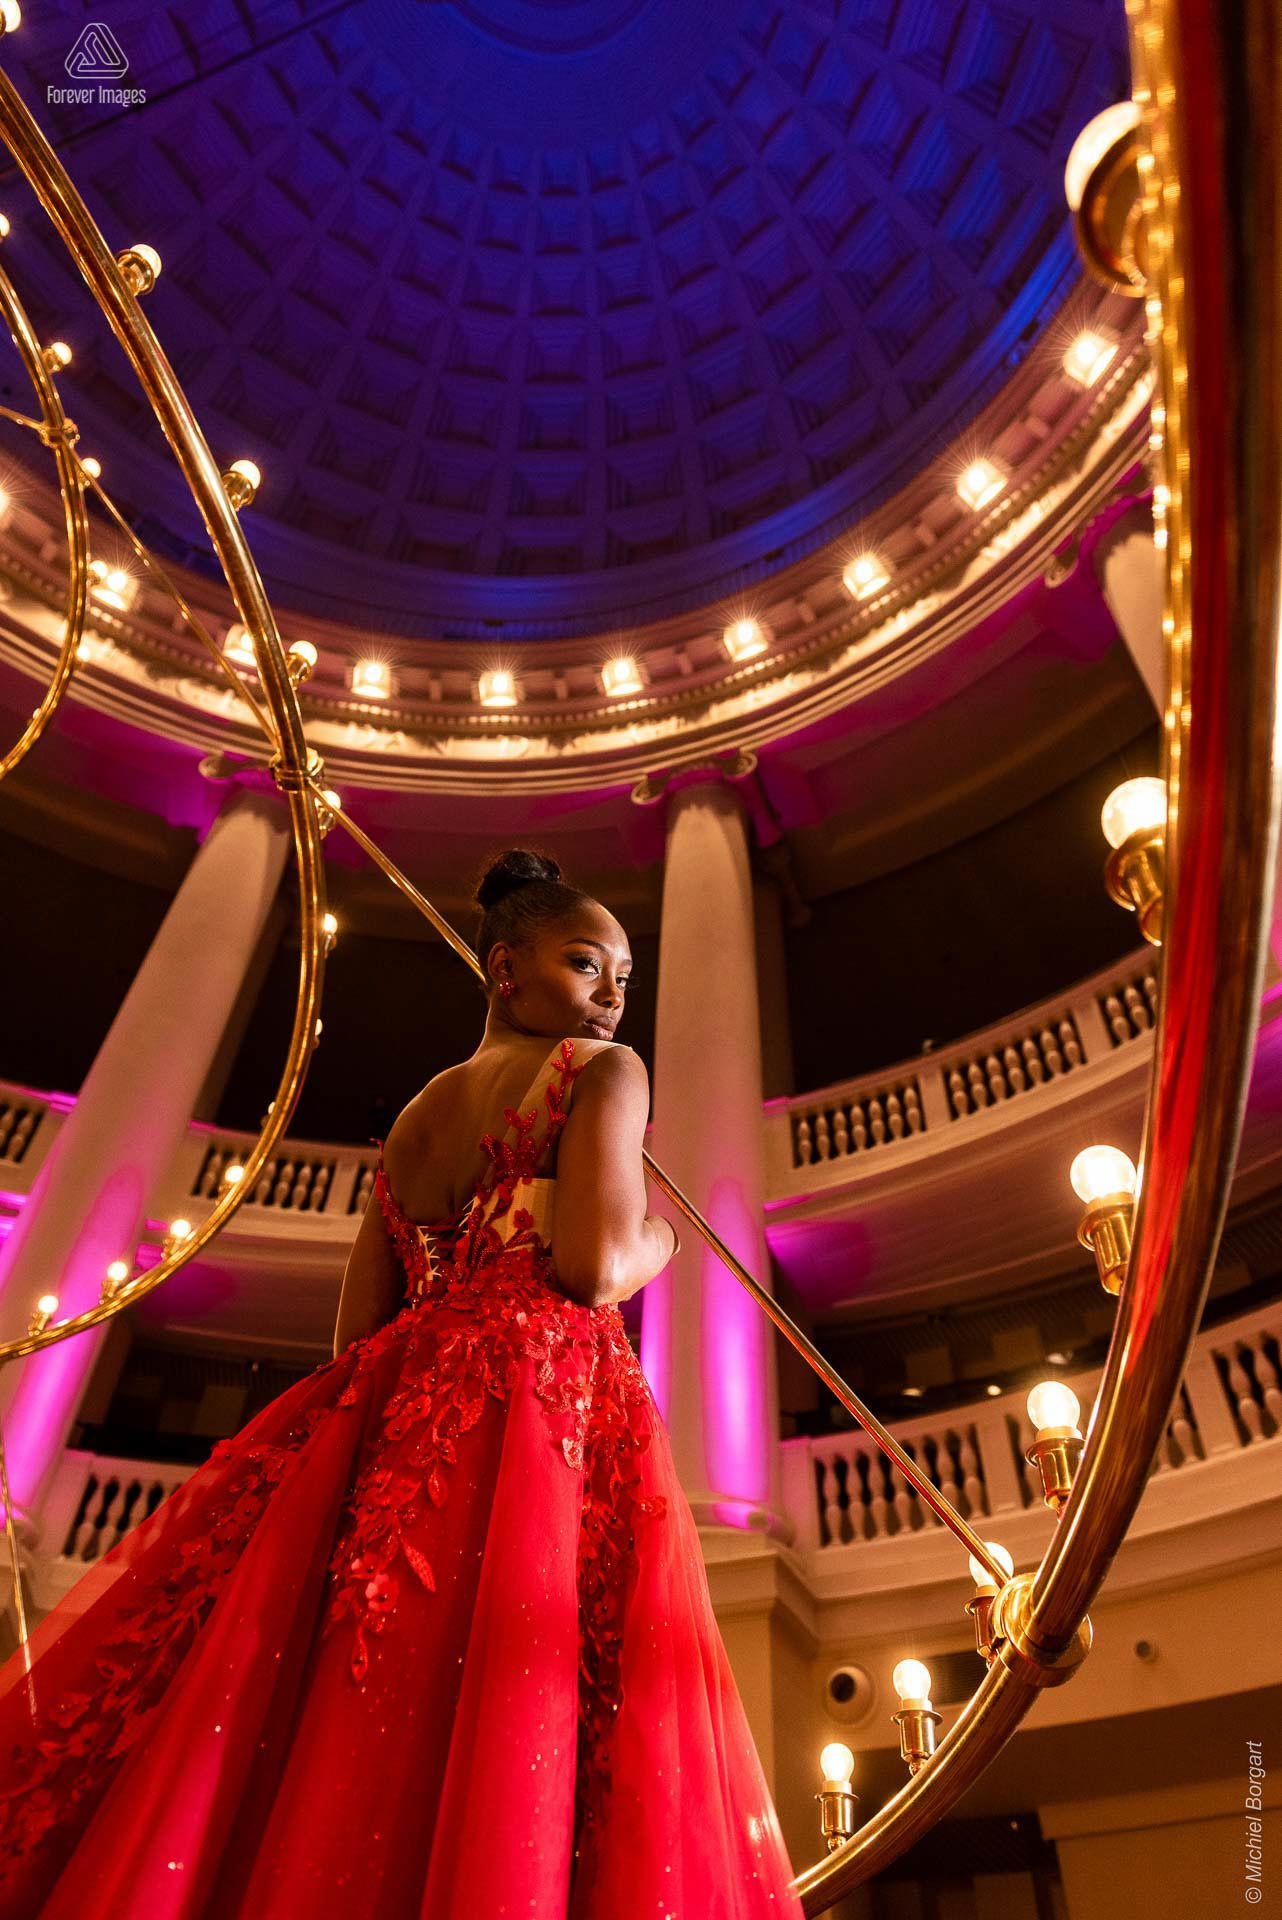 Fashion photo red evening dress chandelier back | Mariana Pietersz Duc Nguyen Koepelkerk Amsterdam | Fashion Photographer Michiel Borgart Forever Images.